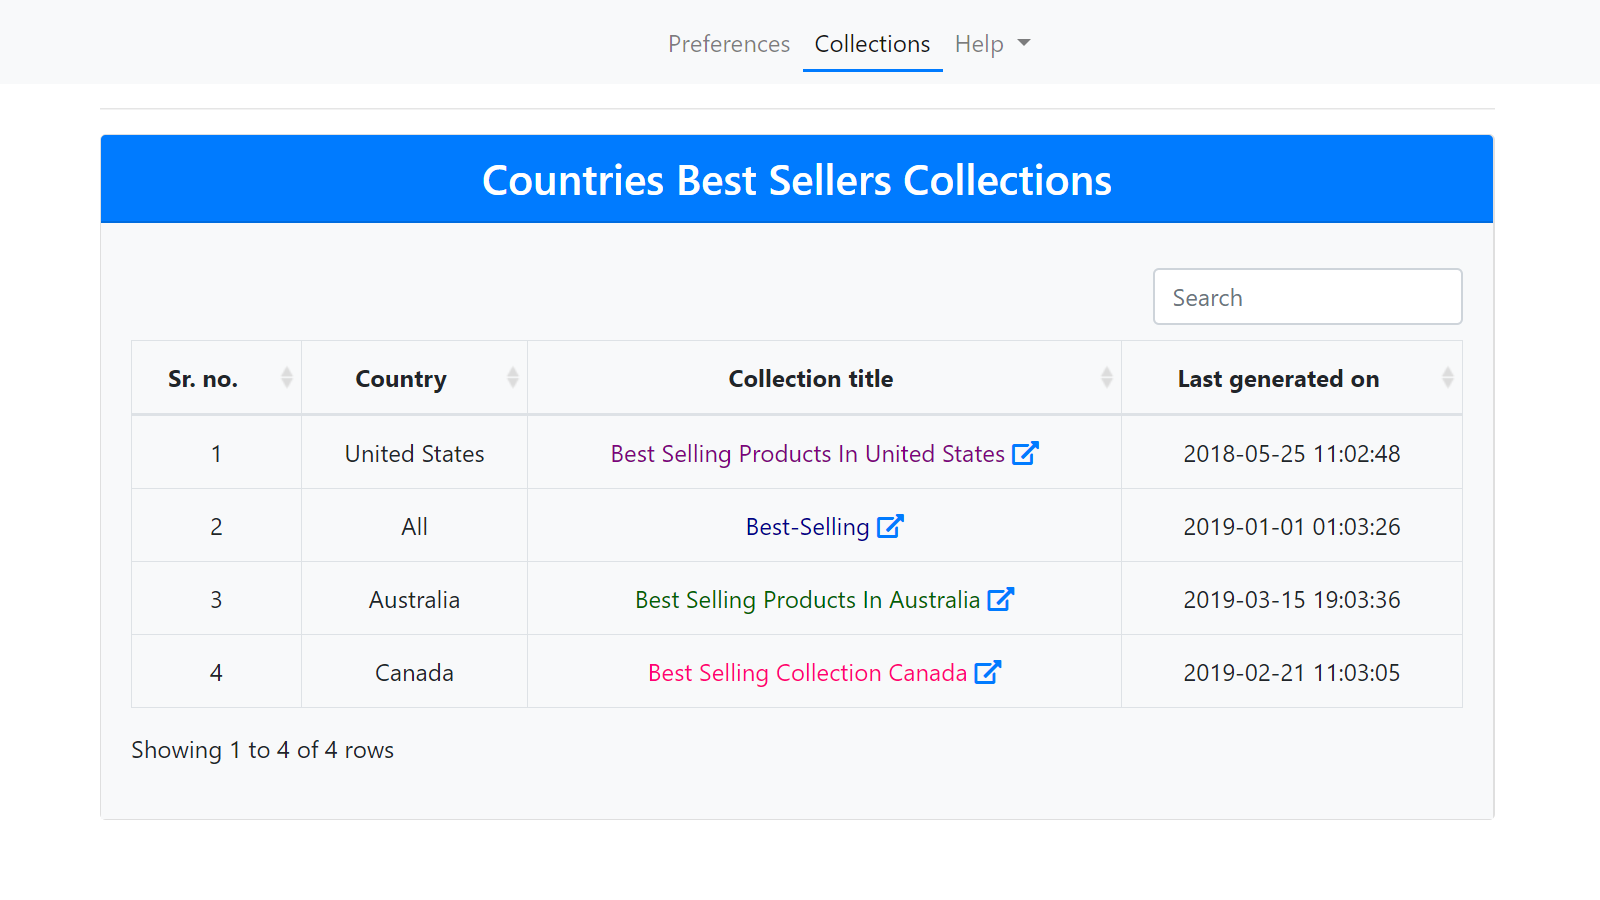 Best Selling by Country